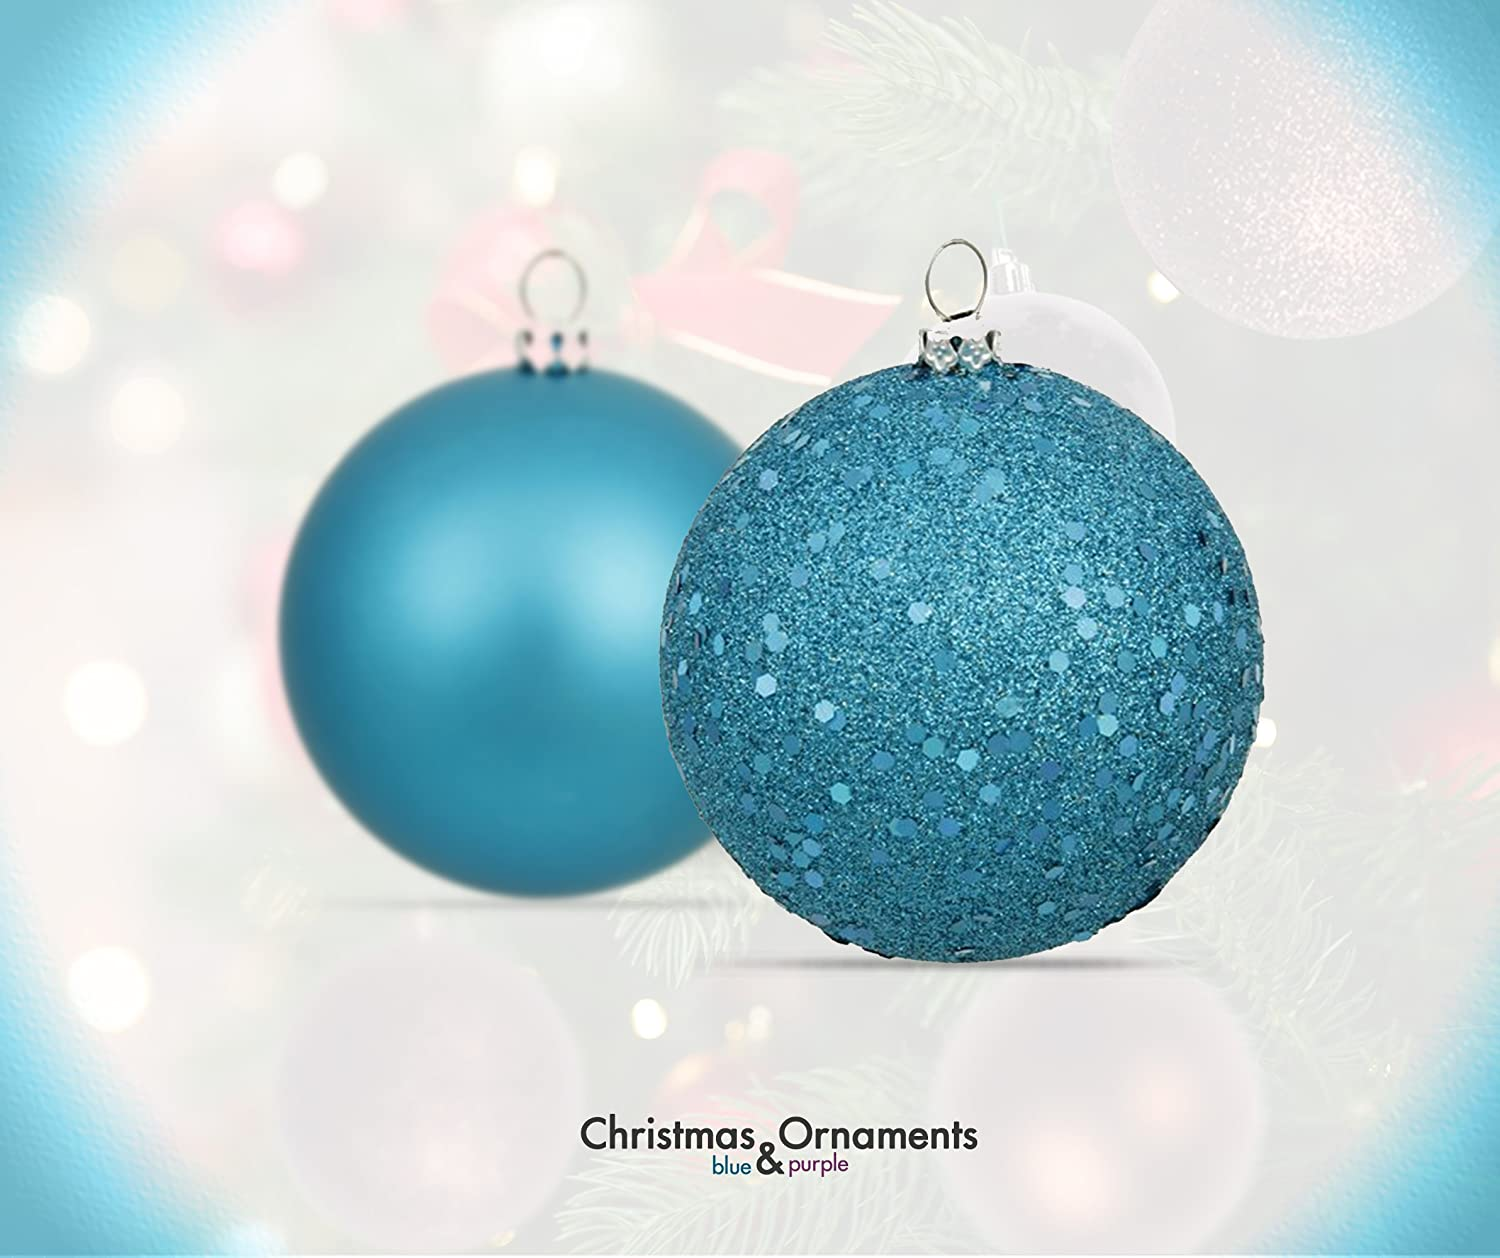 amazoncom r n d toys 100 purple and blue christmas ornament balls shatterproof 100 metal ornament hooks hanging ornaments for indooroutdoor christmas - Teal Christmas Ornaments